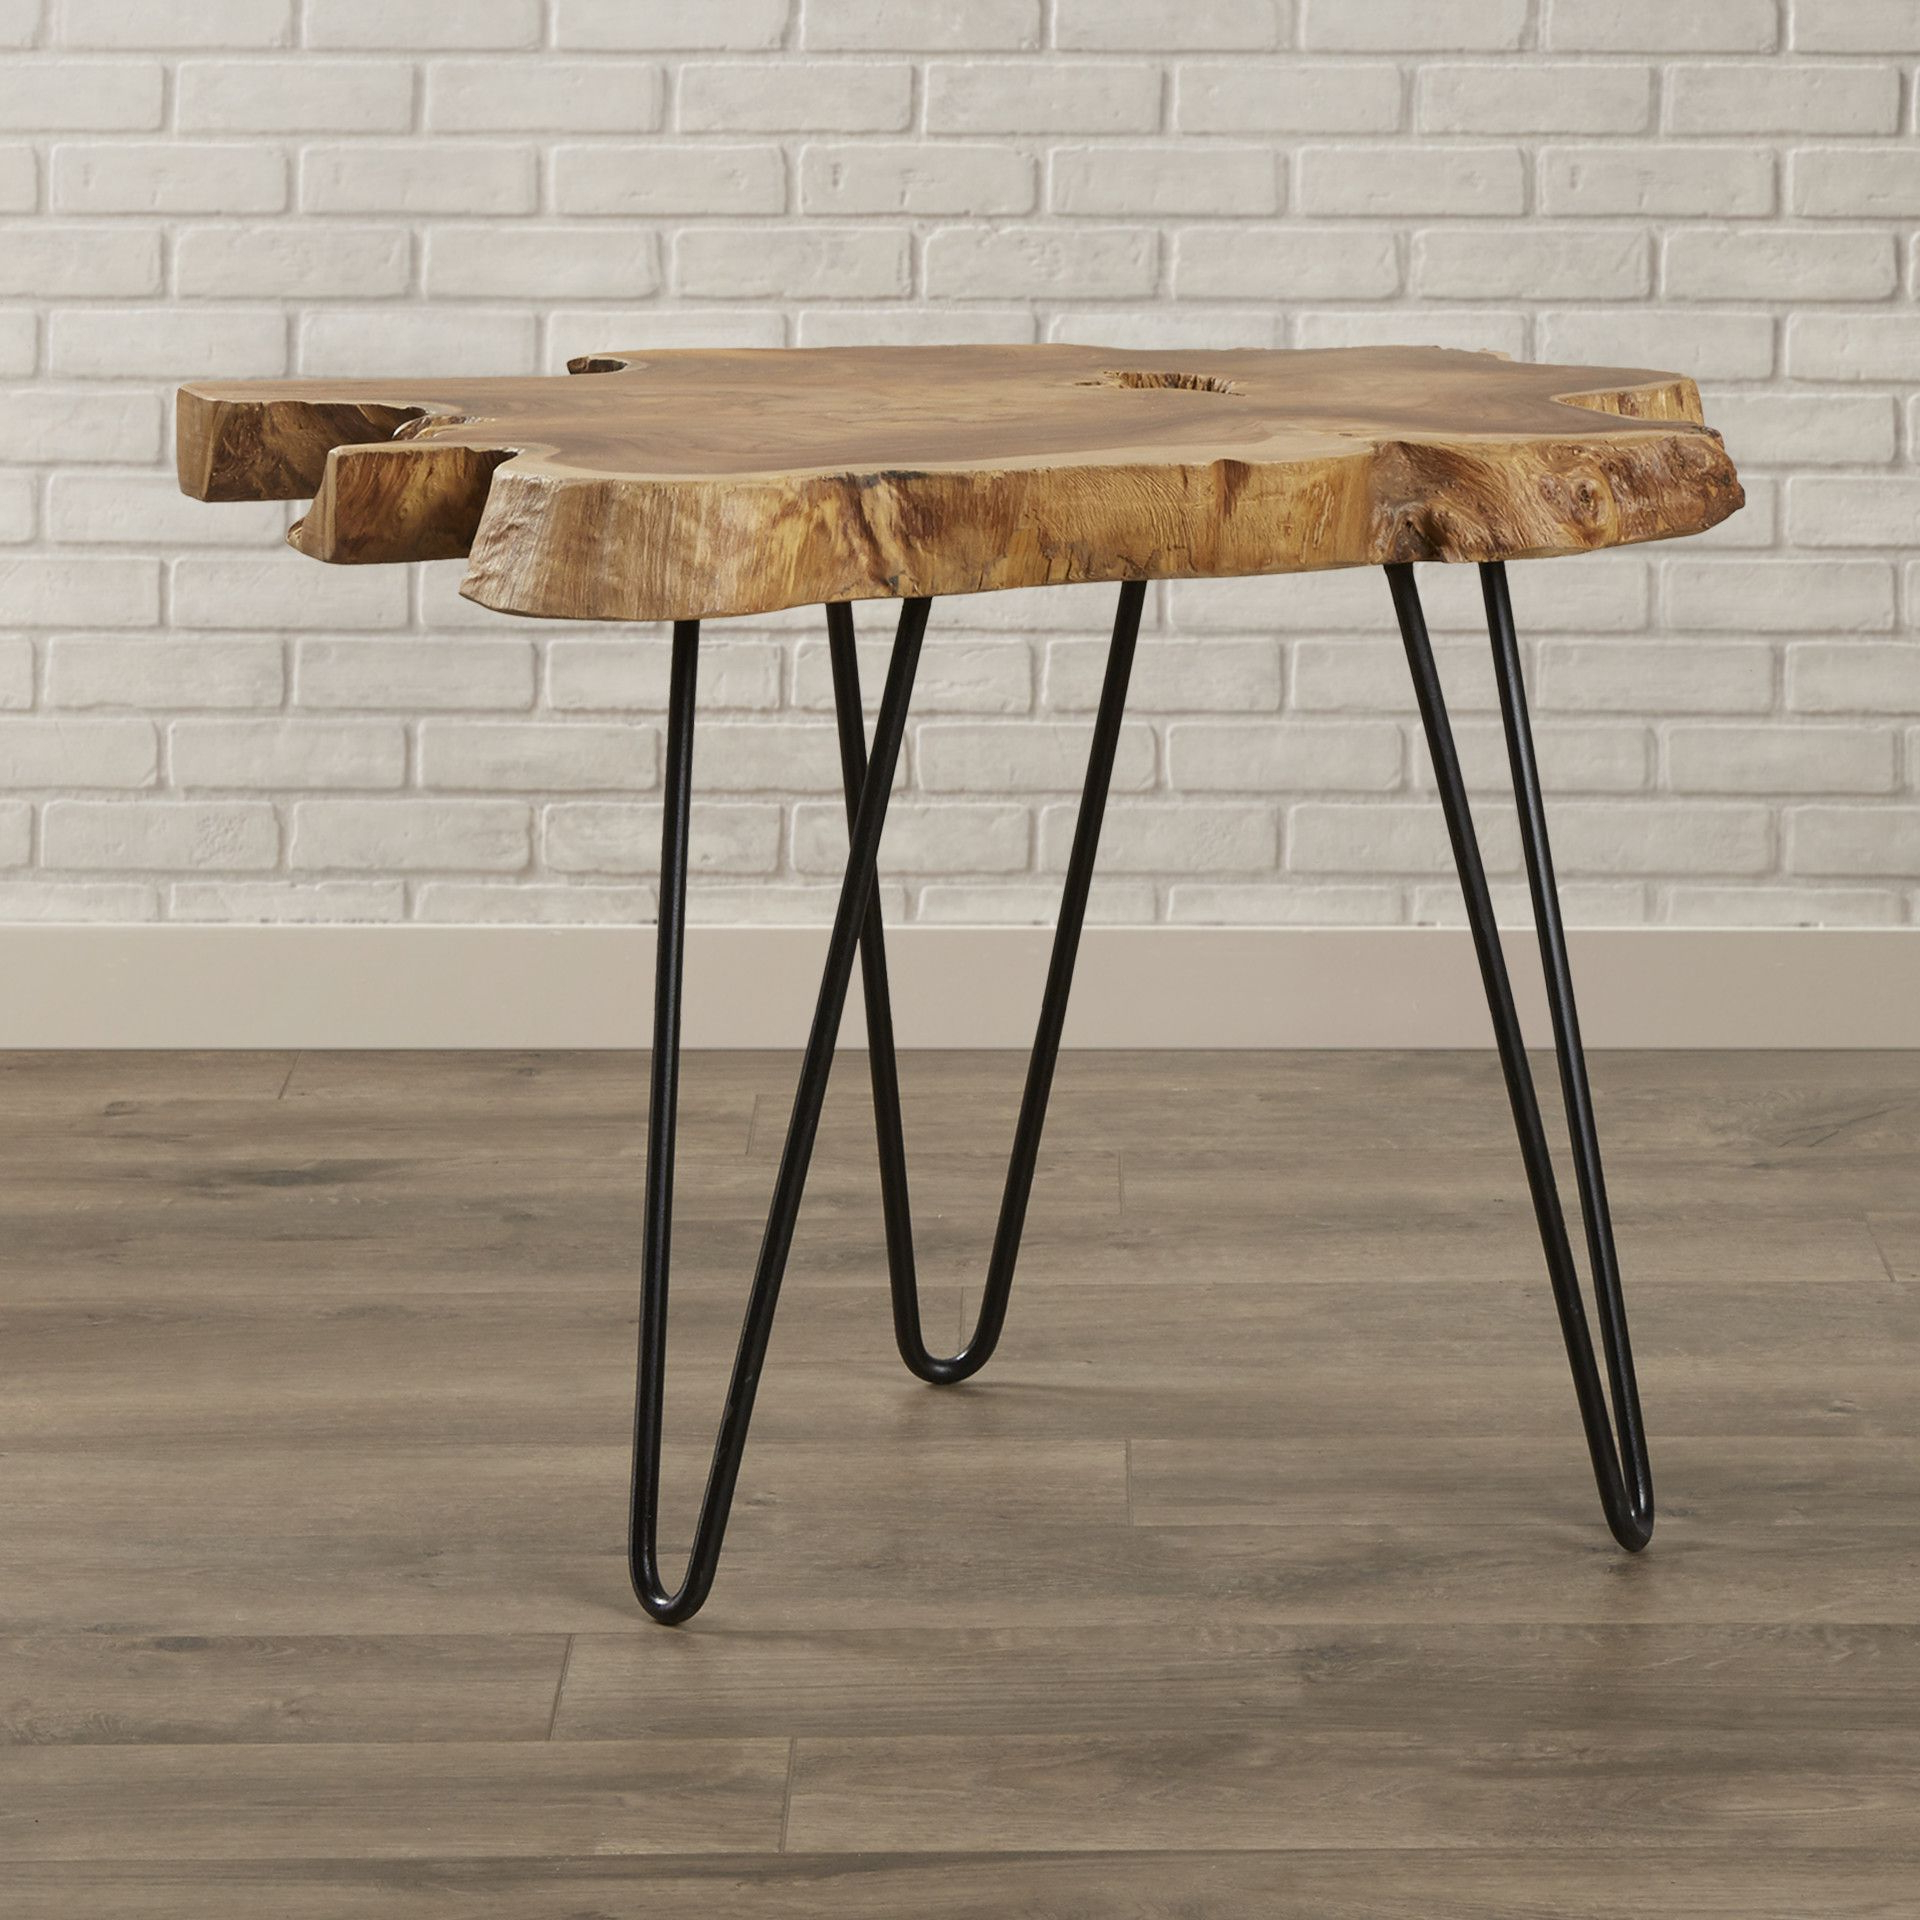 End Tables, Table In Well Known Acacia Wood Medley Medium Dining Tables With Metal Base (View 12 of 26)